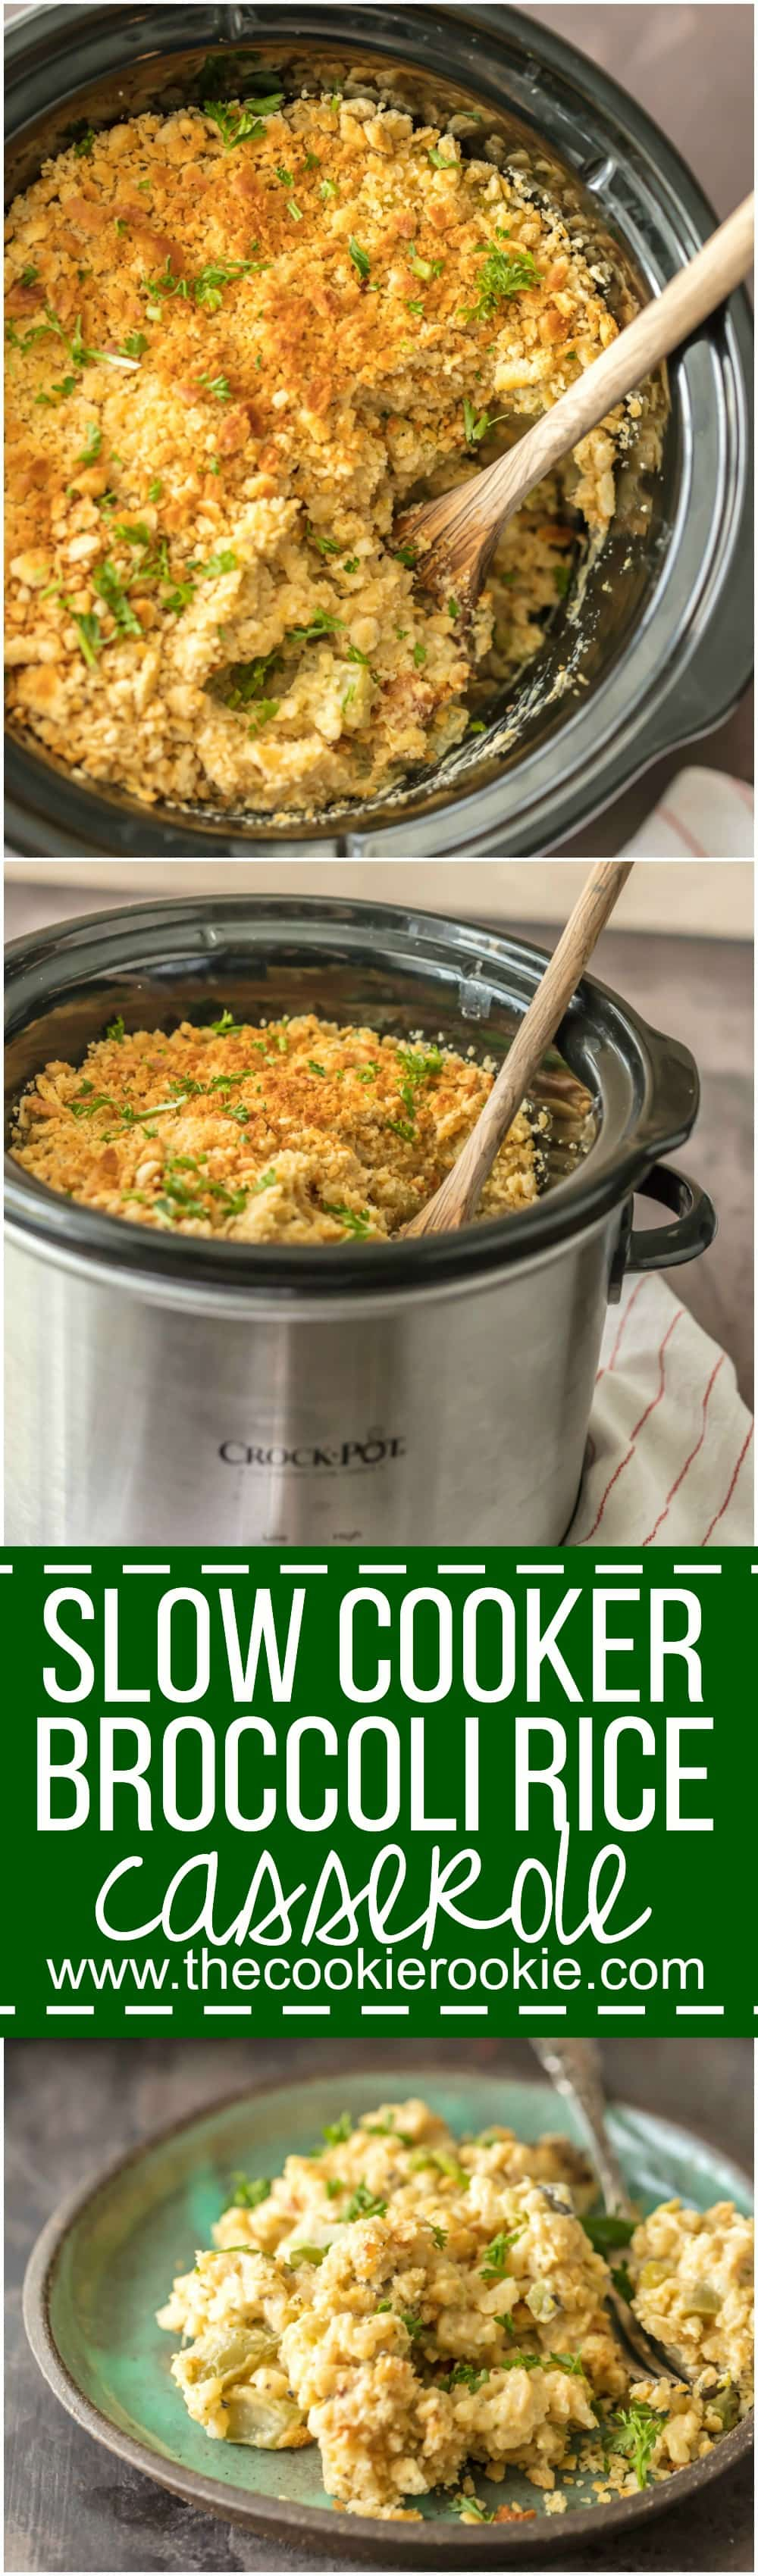 This Slow Cooker Broccoli Rice Casserole is our go-to holiday side dish. Such an easy way to make this Thanksgiving and Christmas favorite, right in your slow cooker!